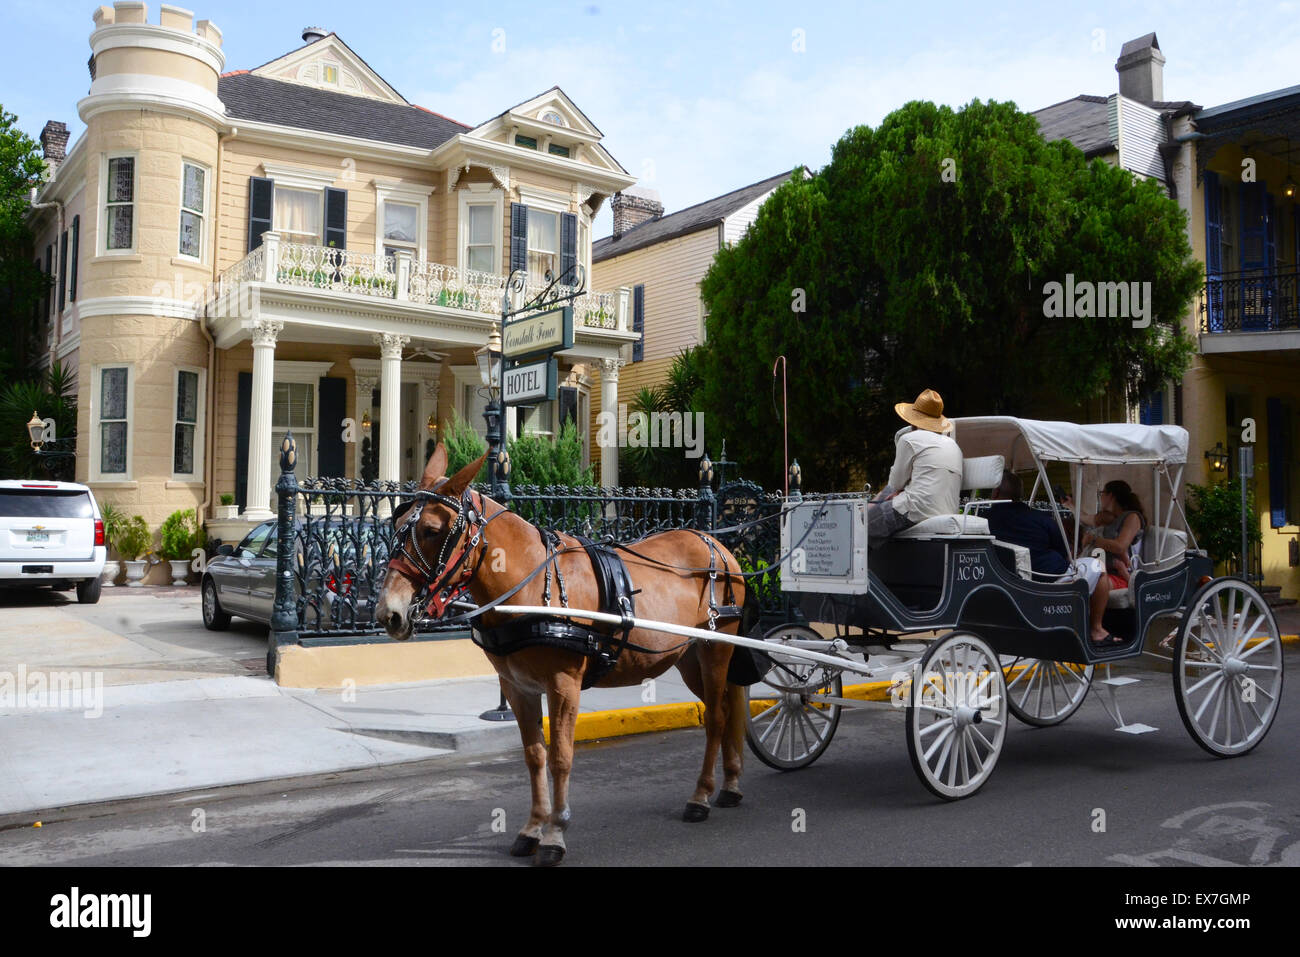 cornstalk hotel new orleans haunted elvis presley french quarter mule drawn carriage - Stock Image